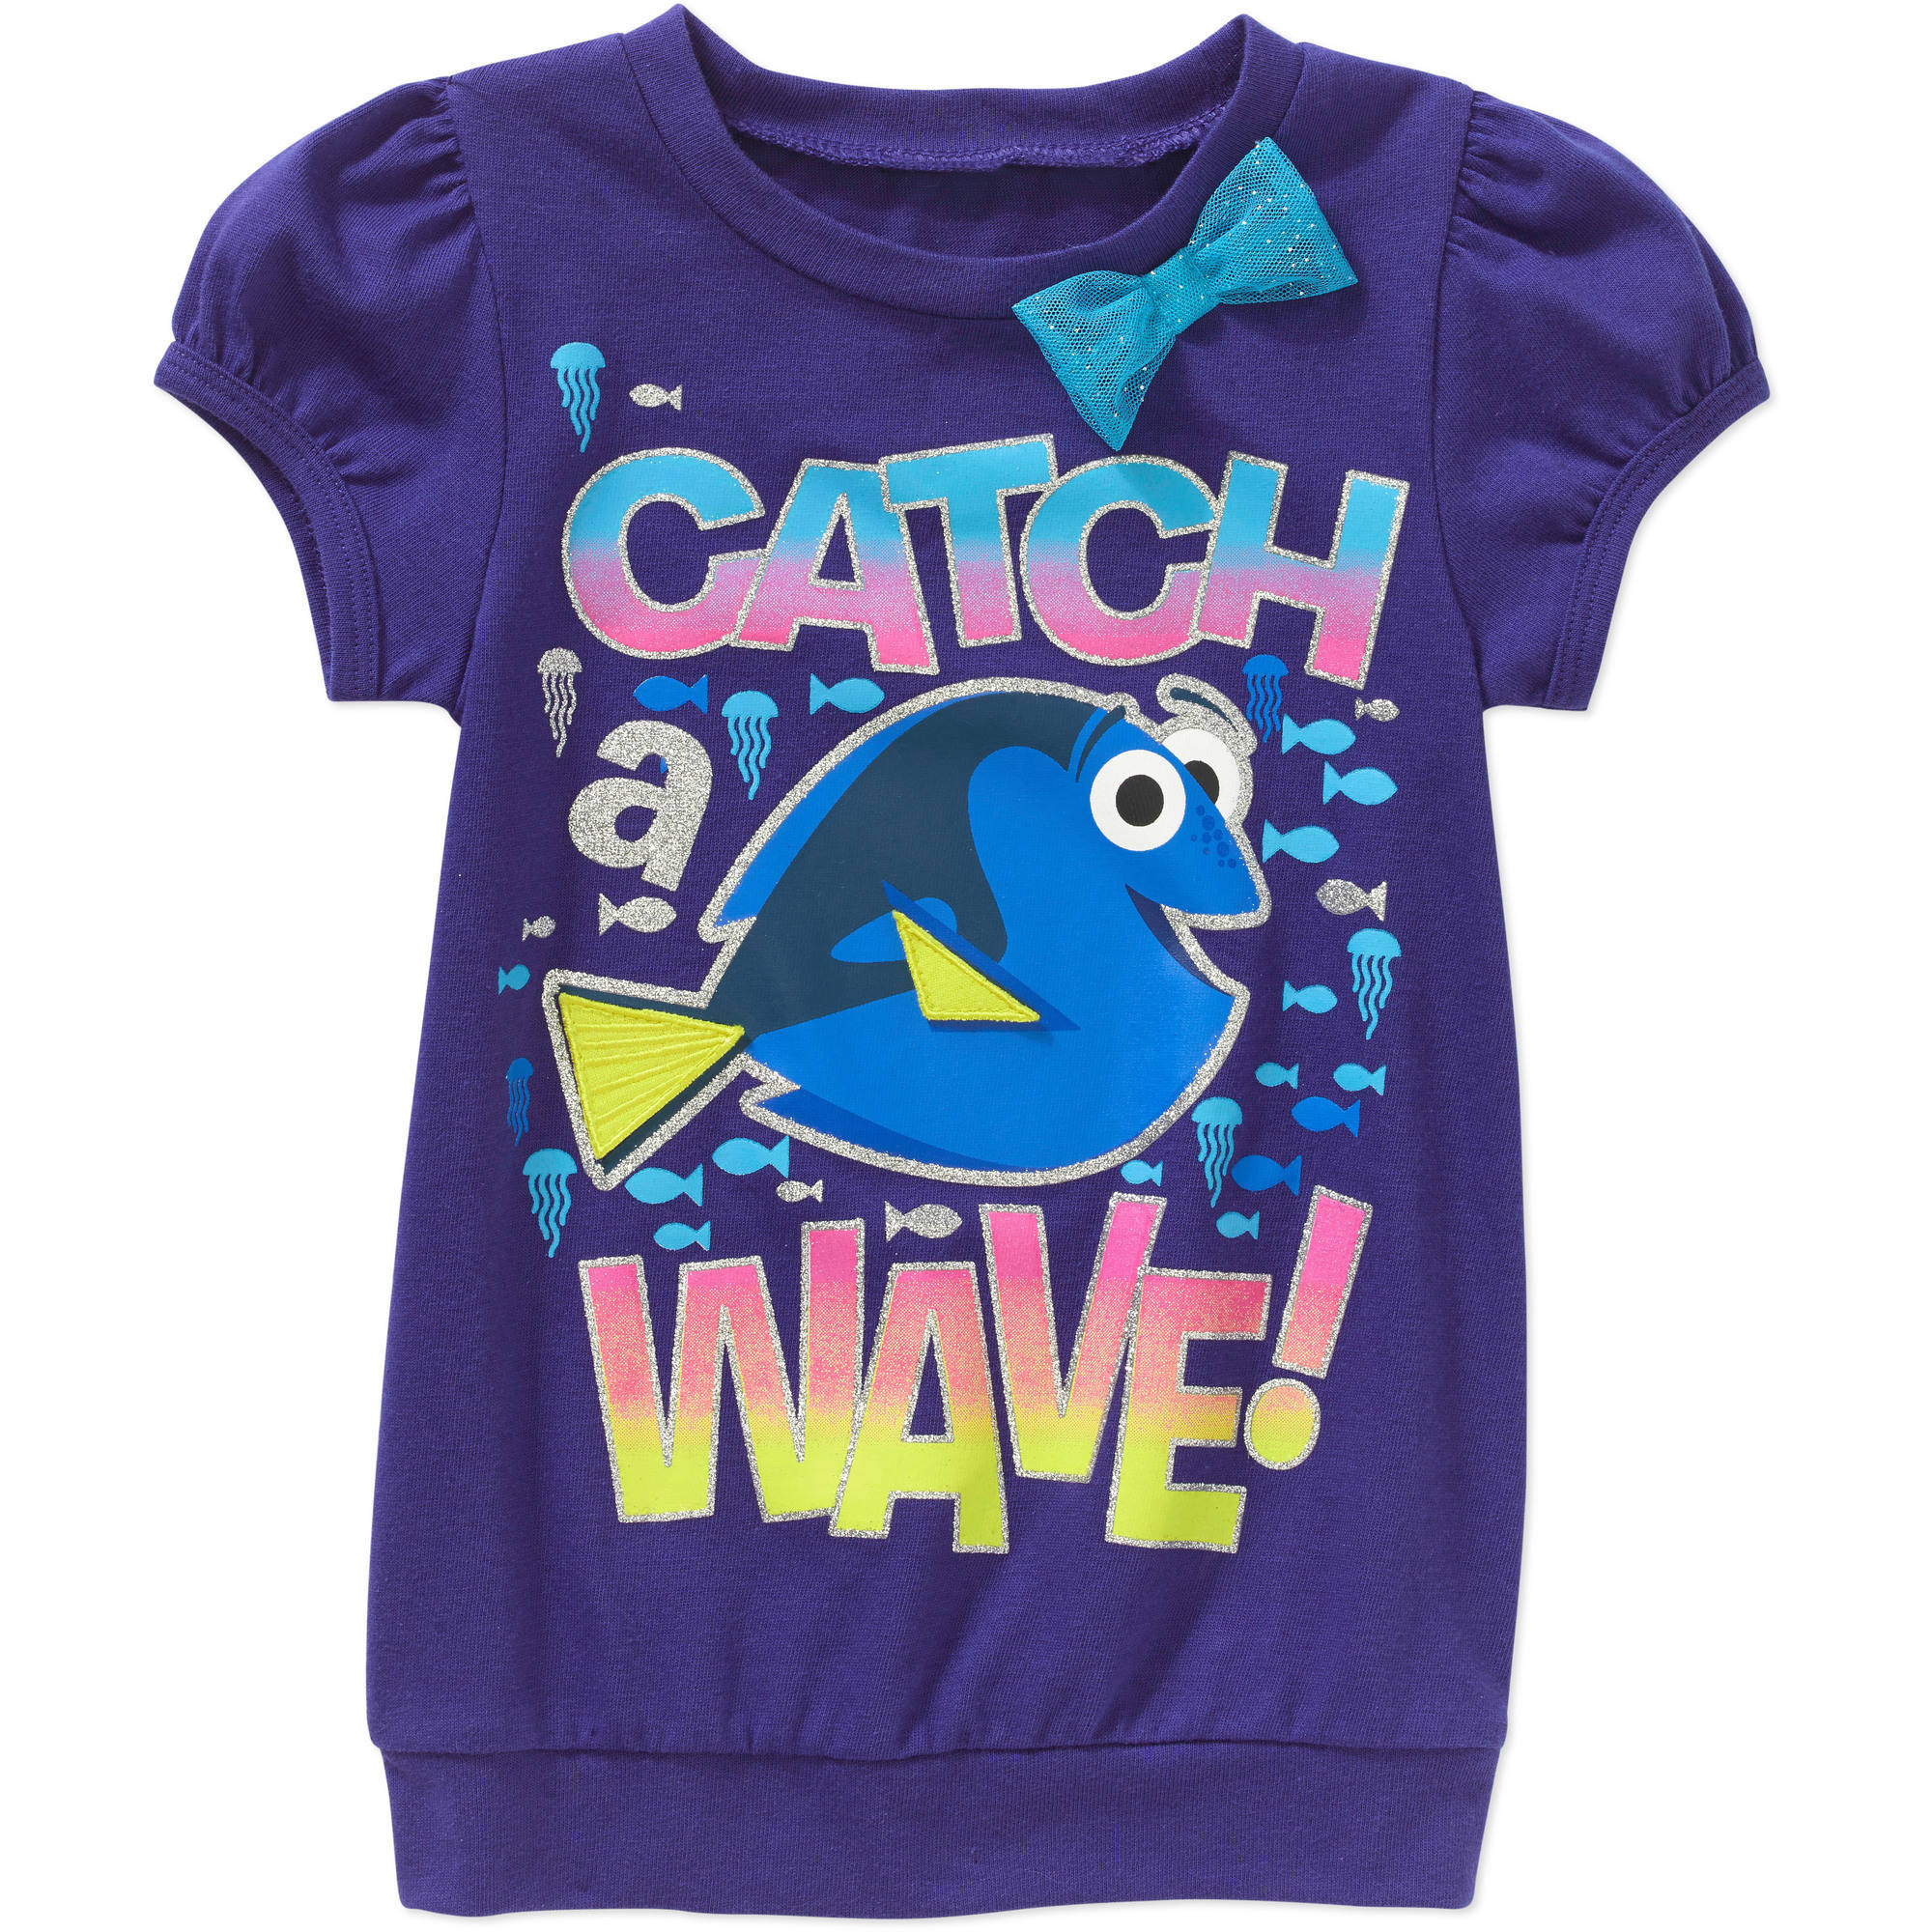 Finding Dory Toddler Girls' Graphic Puff Sleeve Tee Shirt